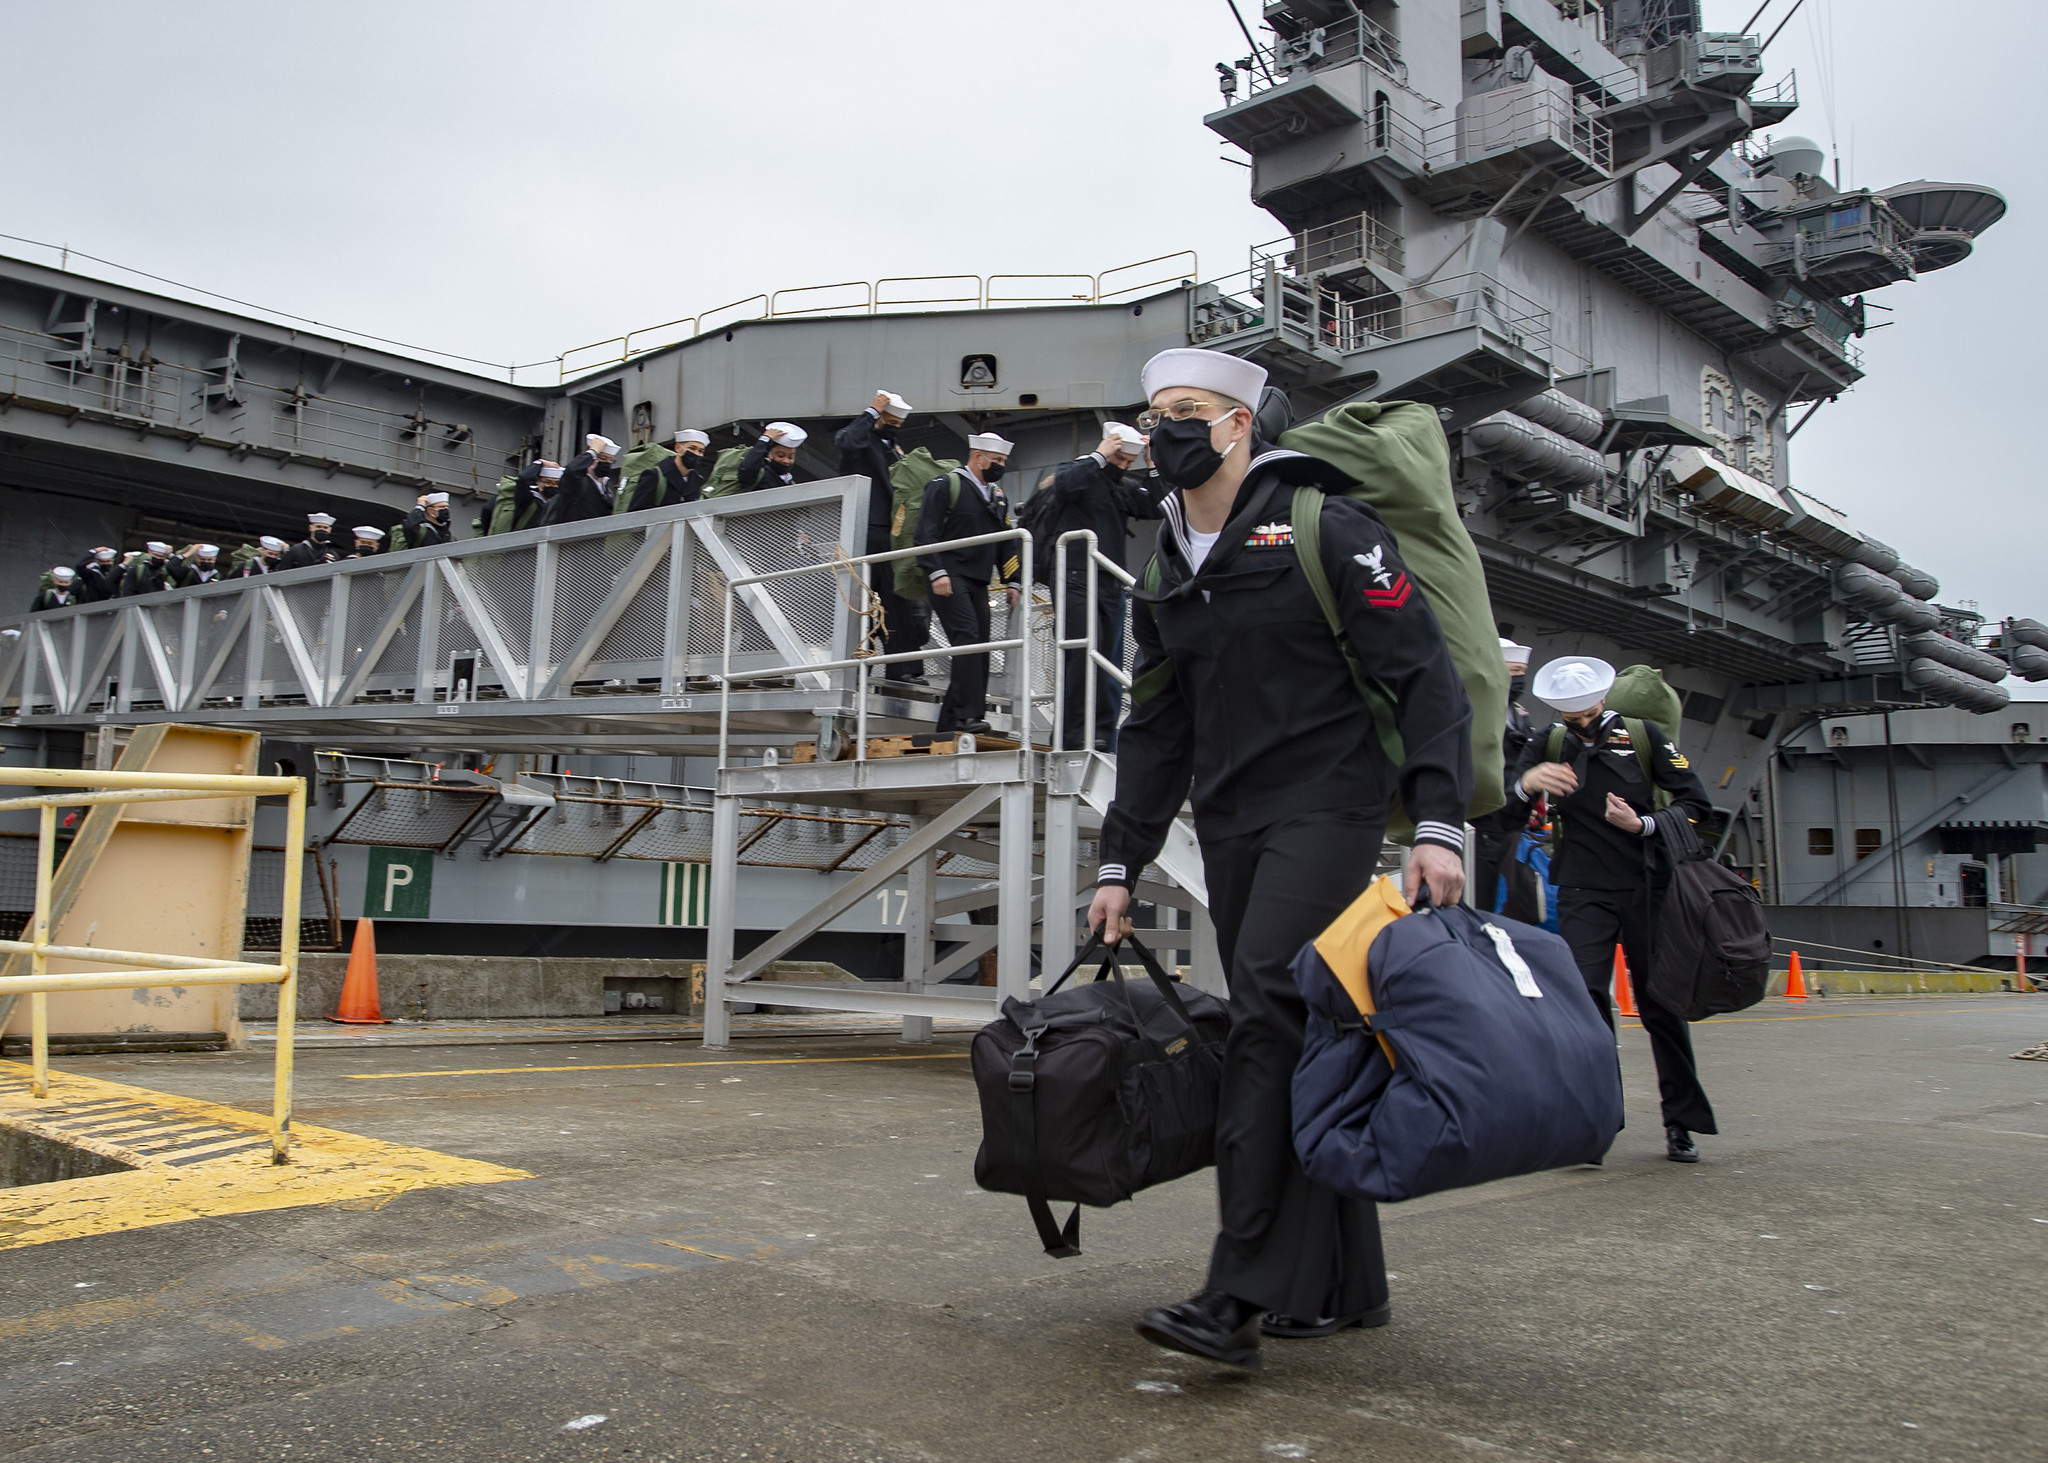 Sailors disembark the aircraft carrier USS Nimitz (CVN 68) at Naval Magazine Indian Island, Wash., on March 4, 2021. Nimitz, part of Nimitz Carrier Strike Group, returned to the Pacific Northwest after more than 11 months following a deployment to U.S. 5th and U.S. 7th Fleets. (MC2 Eleanor Vara/Navy)